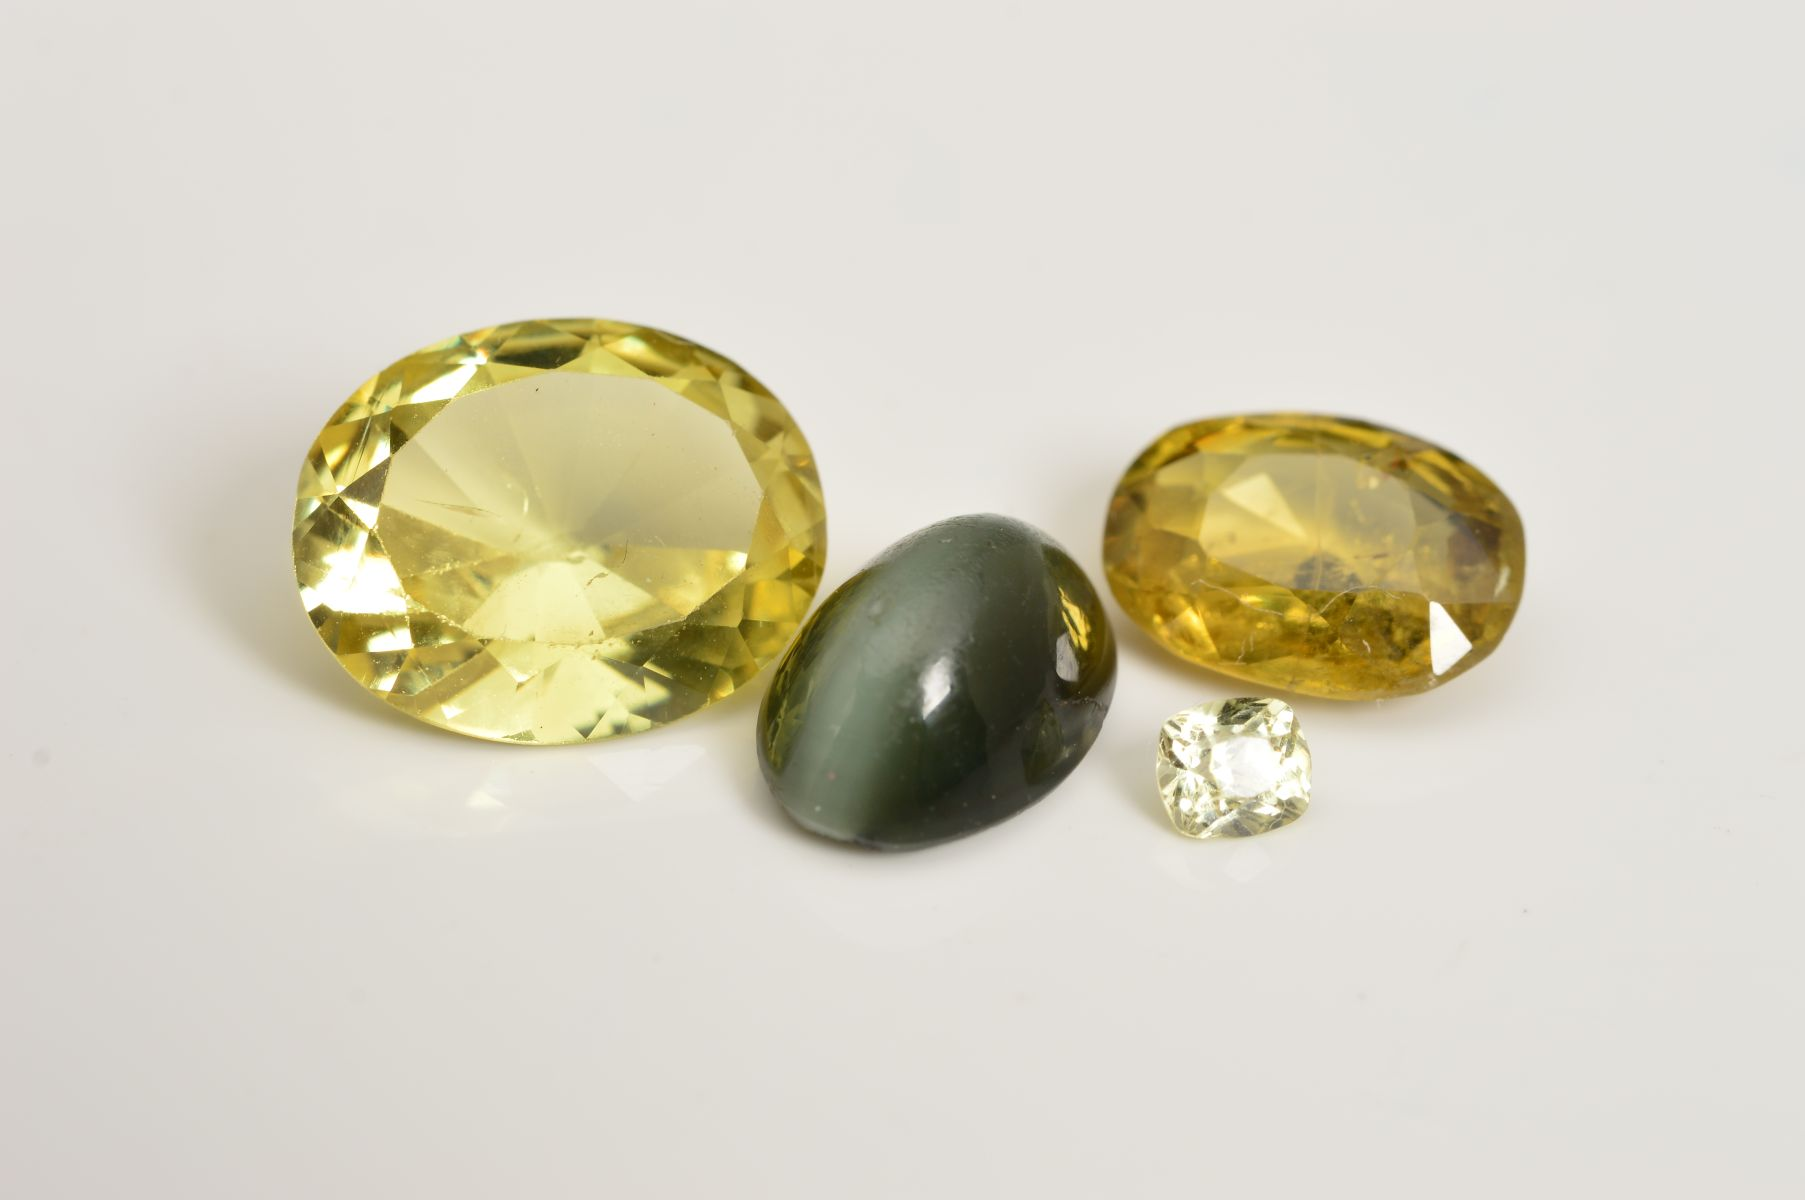 A SELECTION OF FOUR CHRYSOBERYL GEMSTONES,03 Cts - Chasseurs de Pierres